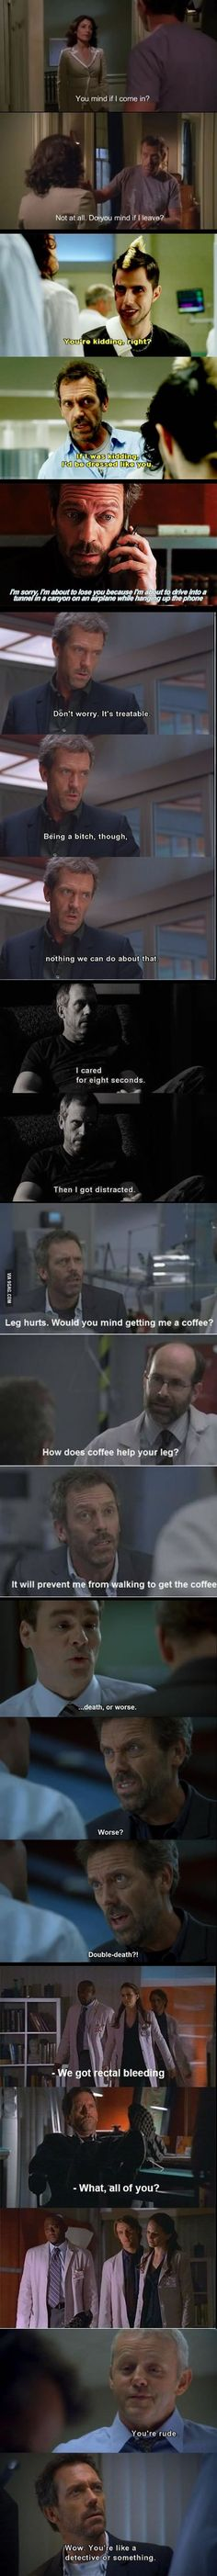 House-being-House-fun,funny,lol,meme,humor,amusing,laugh,picture,video,movie,girl,comic